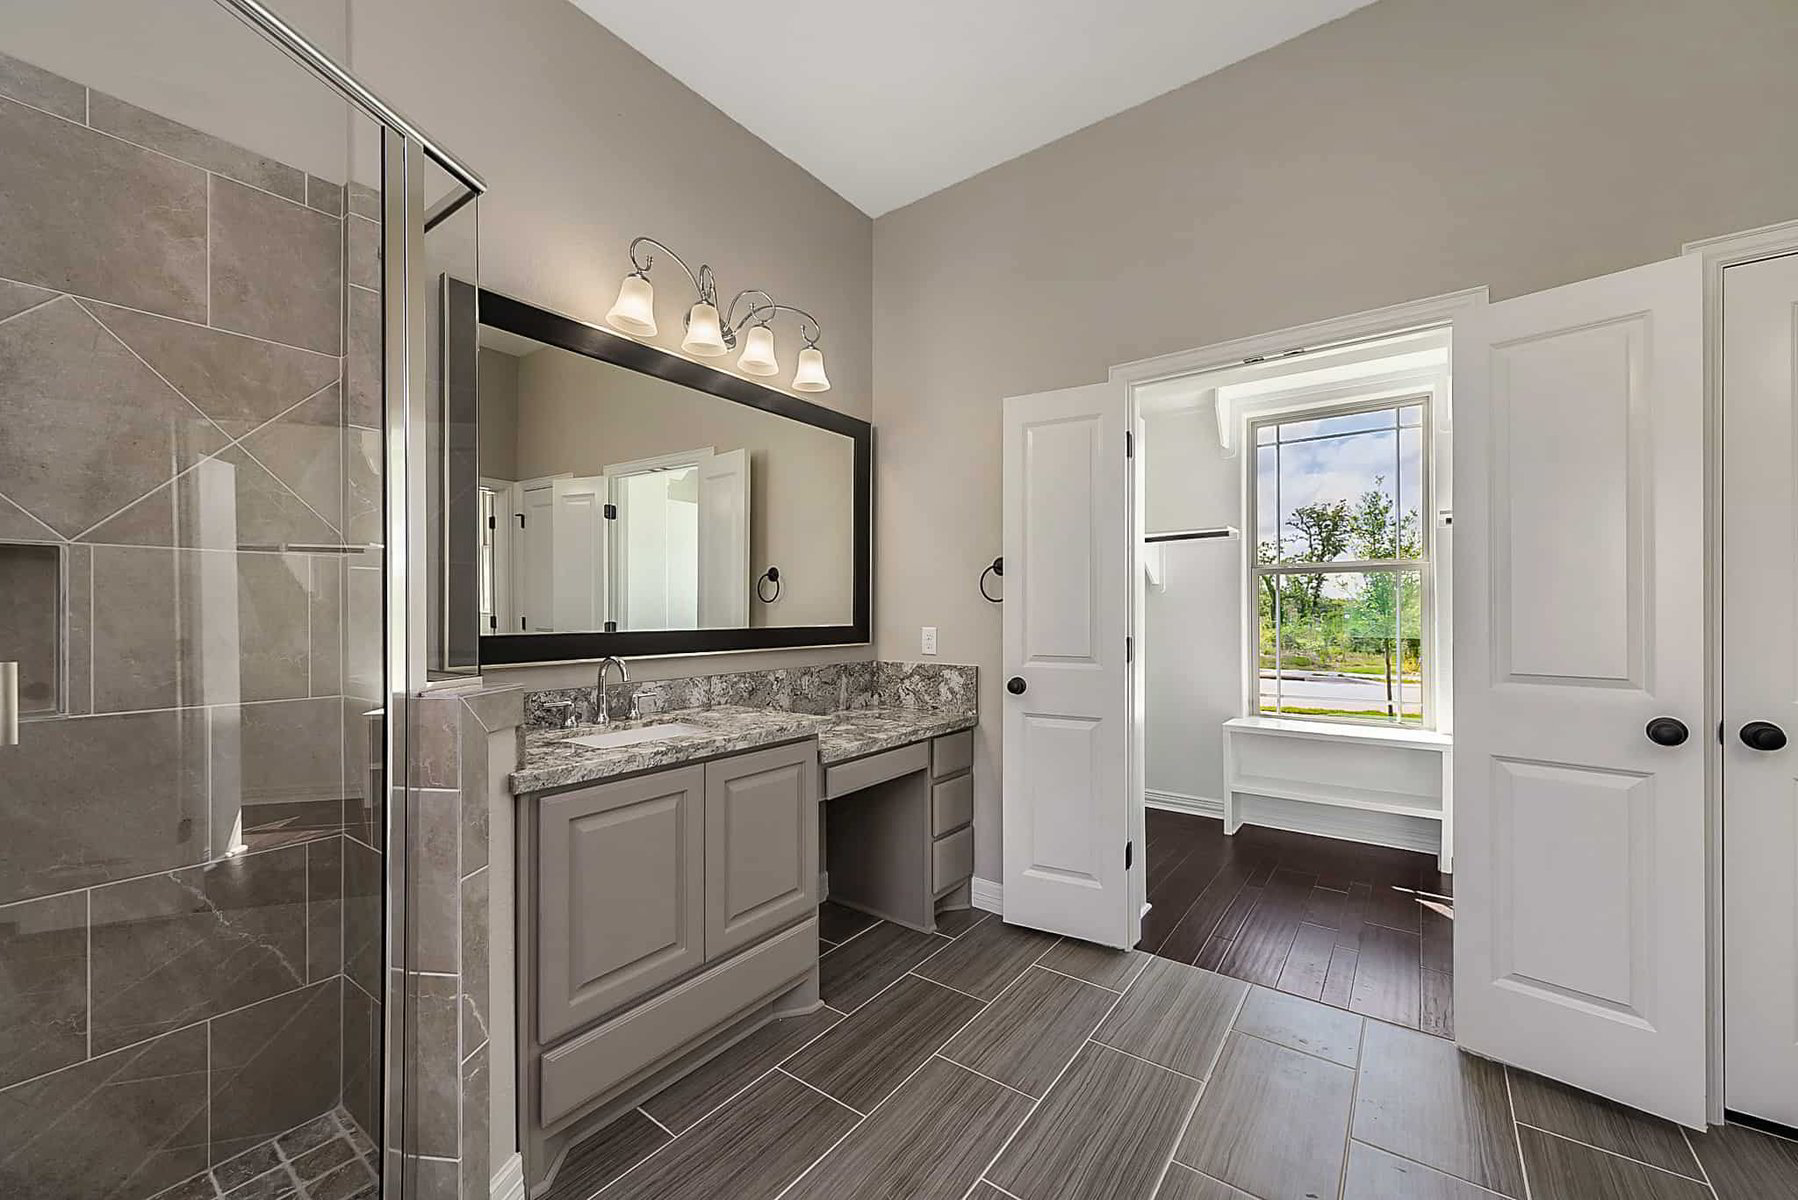 This is a Kaleo Homes master bathroom image for their new model home in Southern Pointe near College Station, TX.